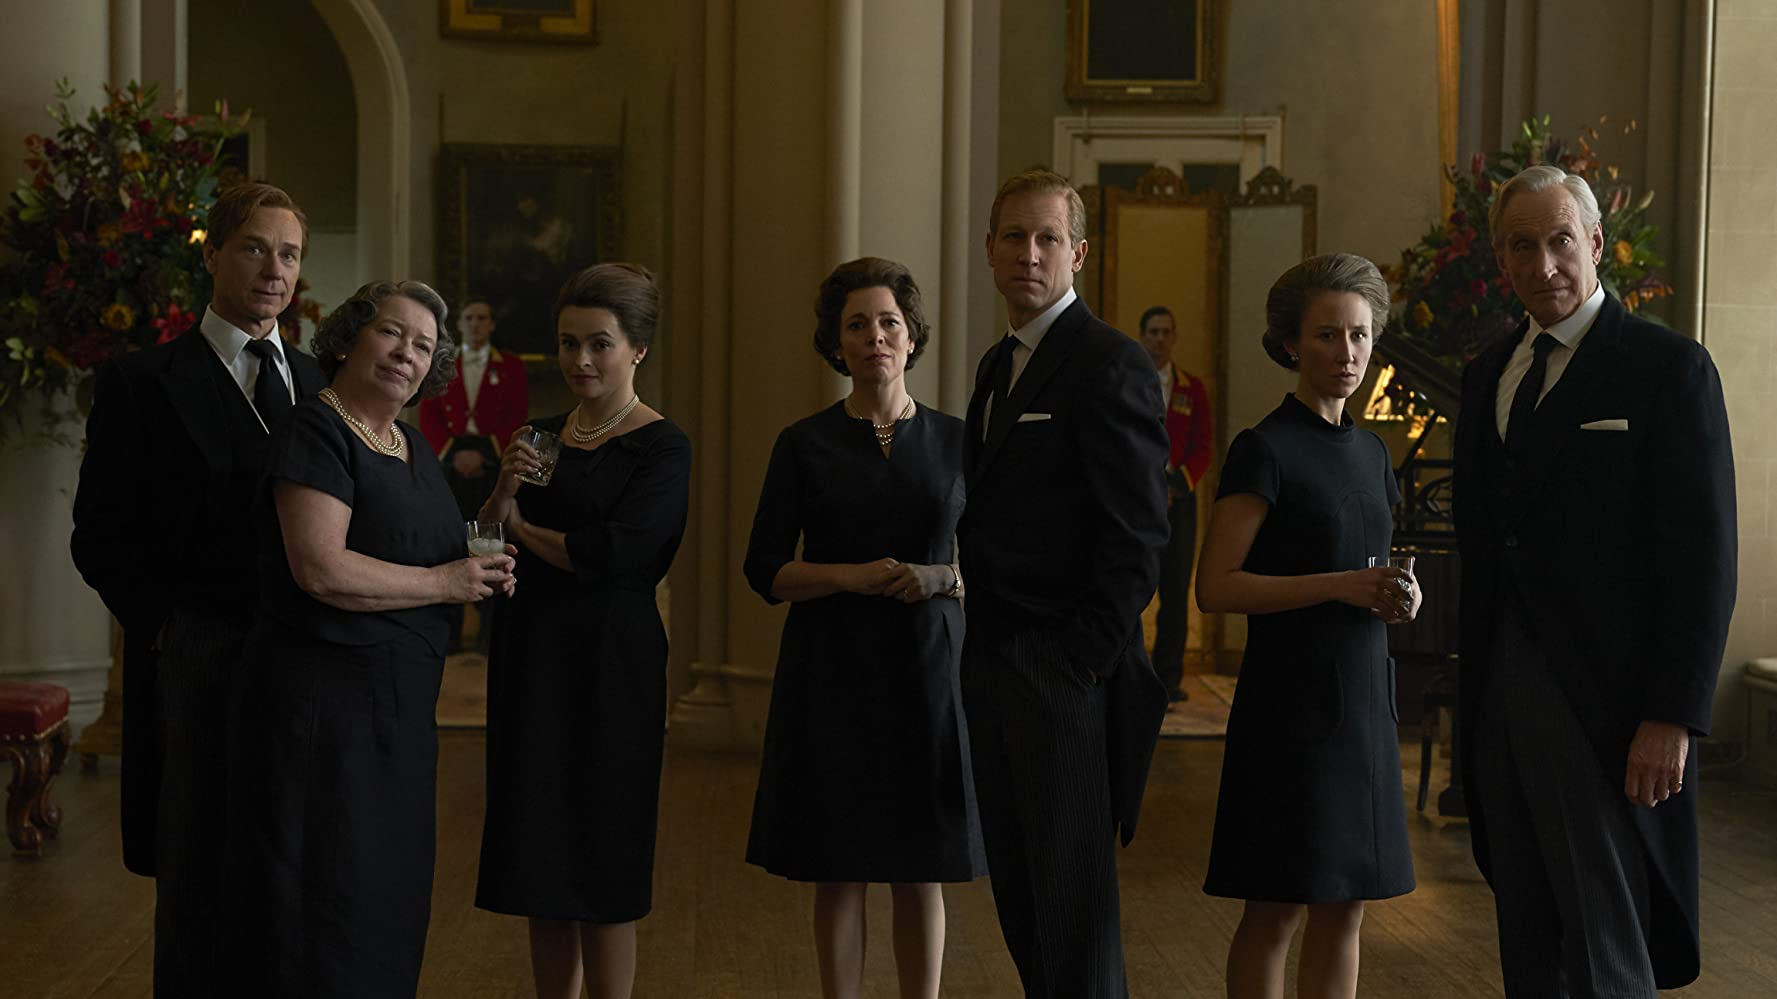 Helena Bonham Carter, Marion Bailey, Ben Daniels, and Olivia Colman in The Crown (2016)